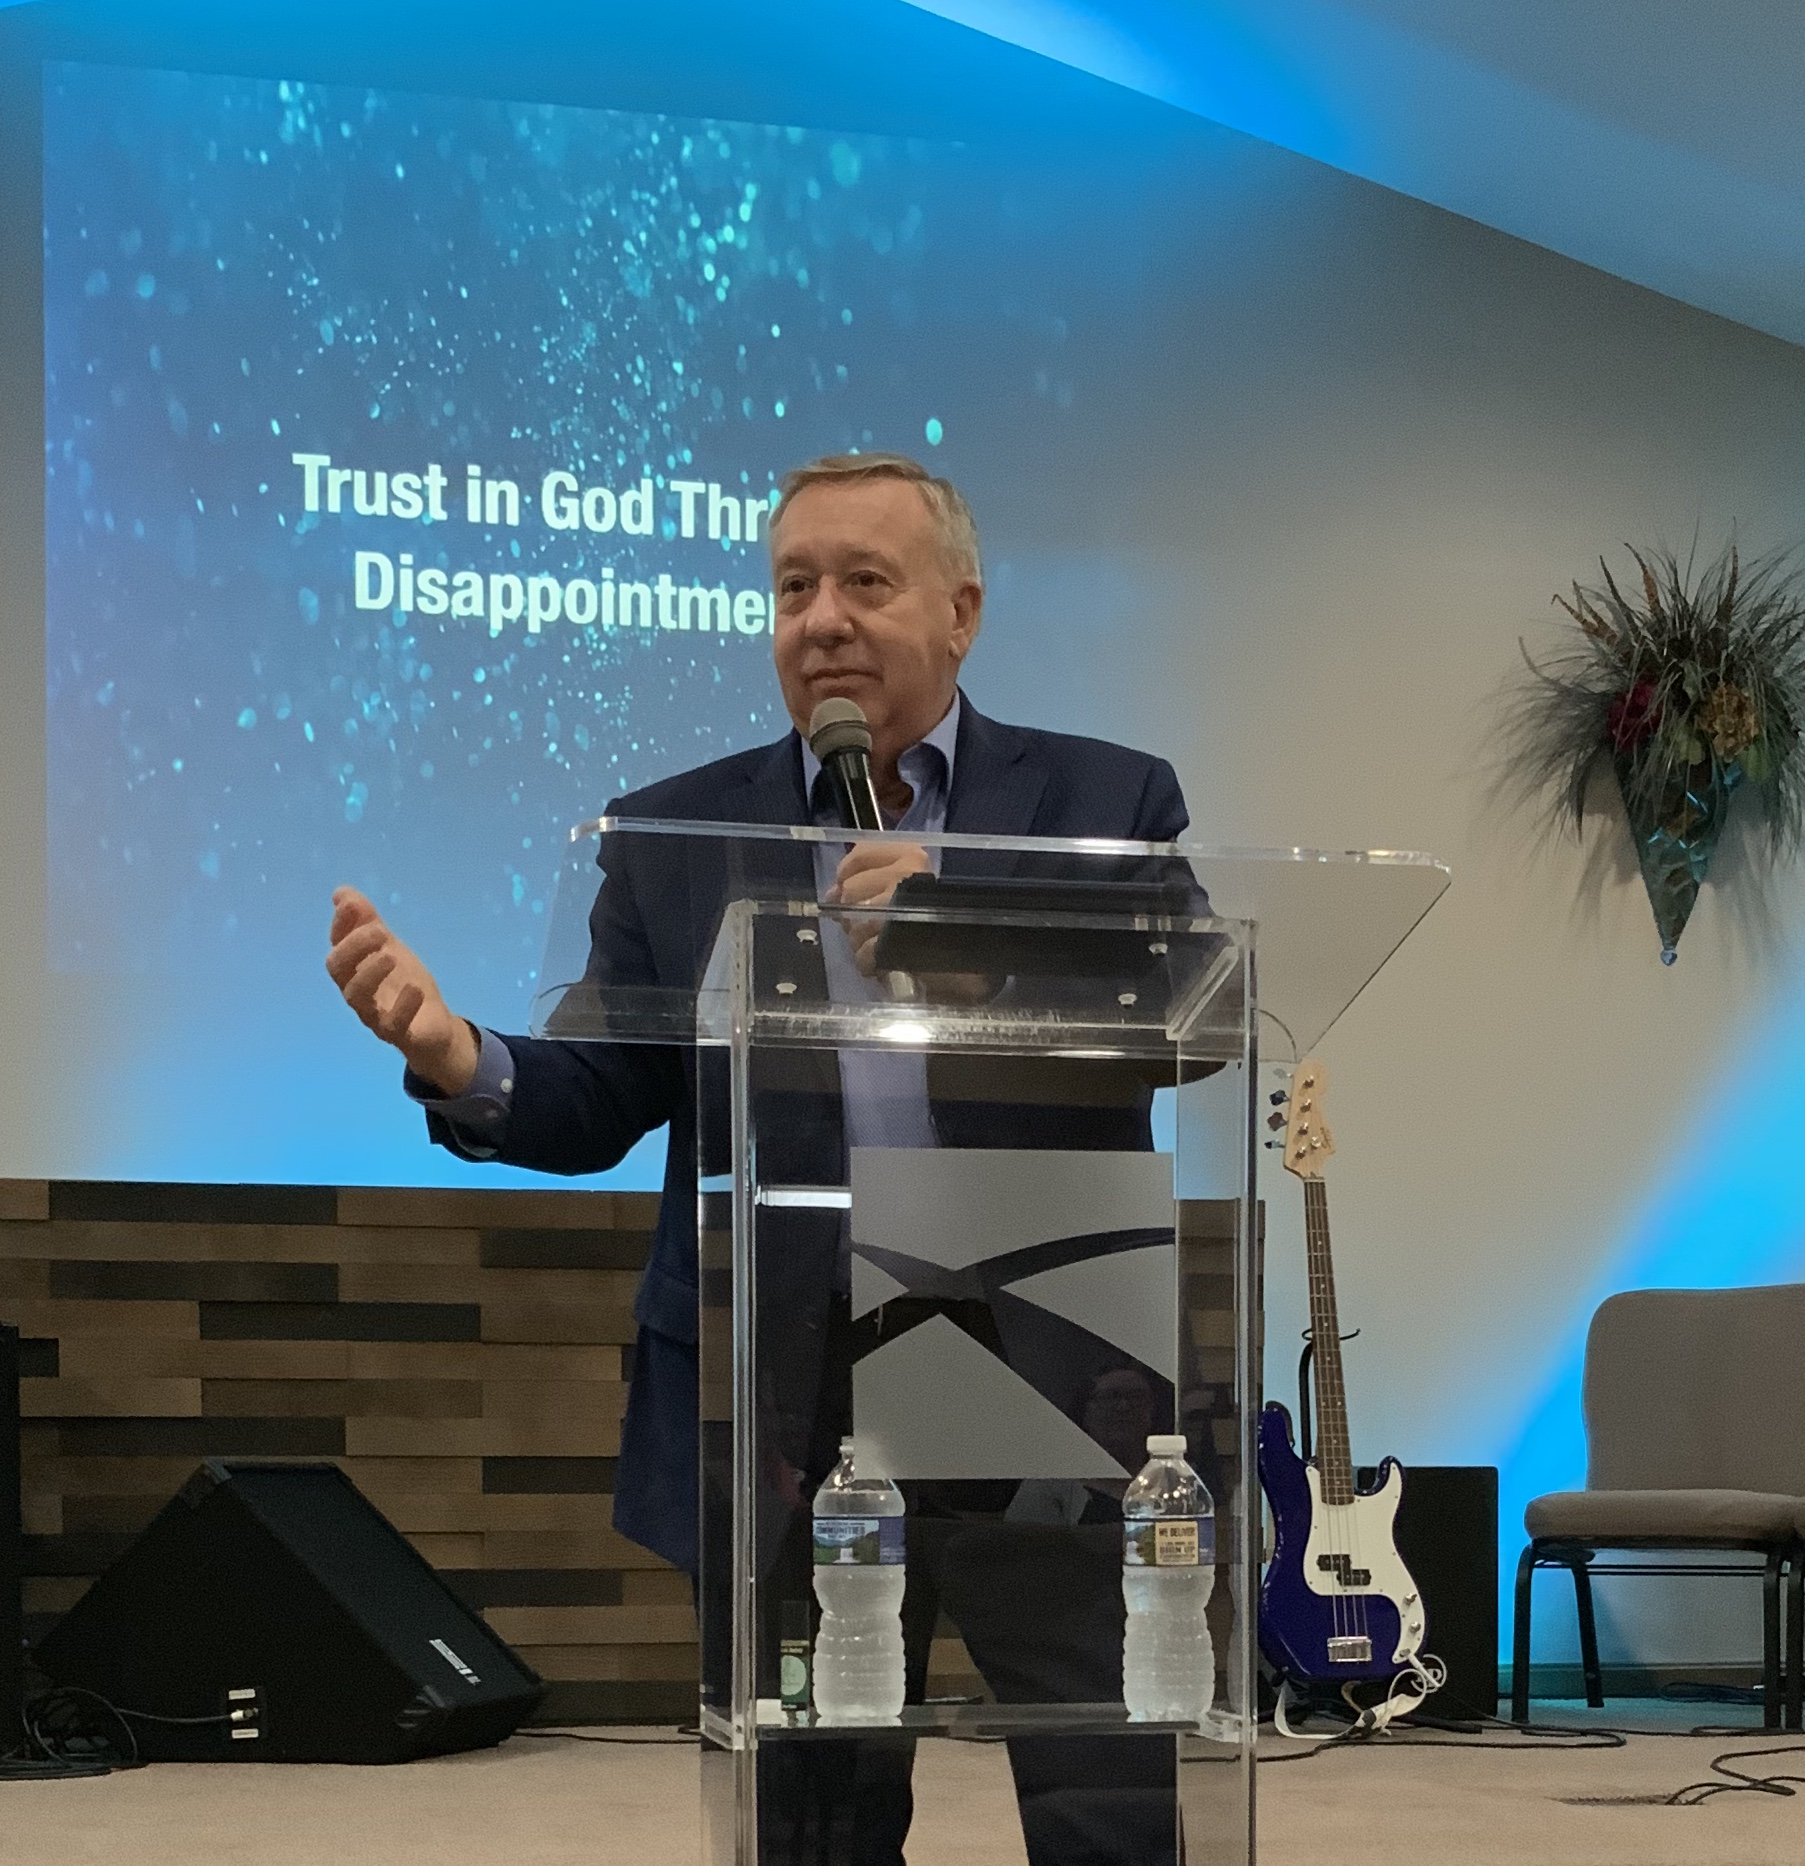 Trusting God Through Disappointment